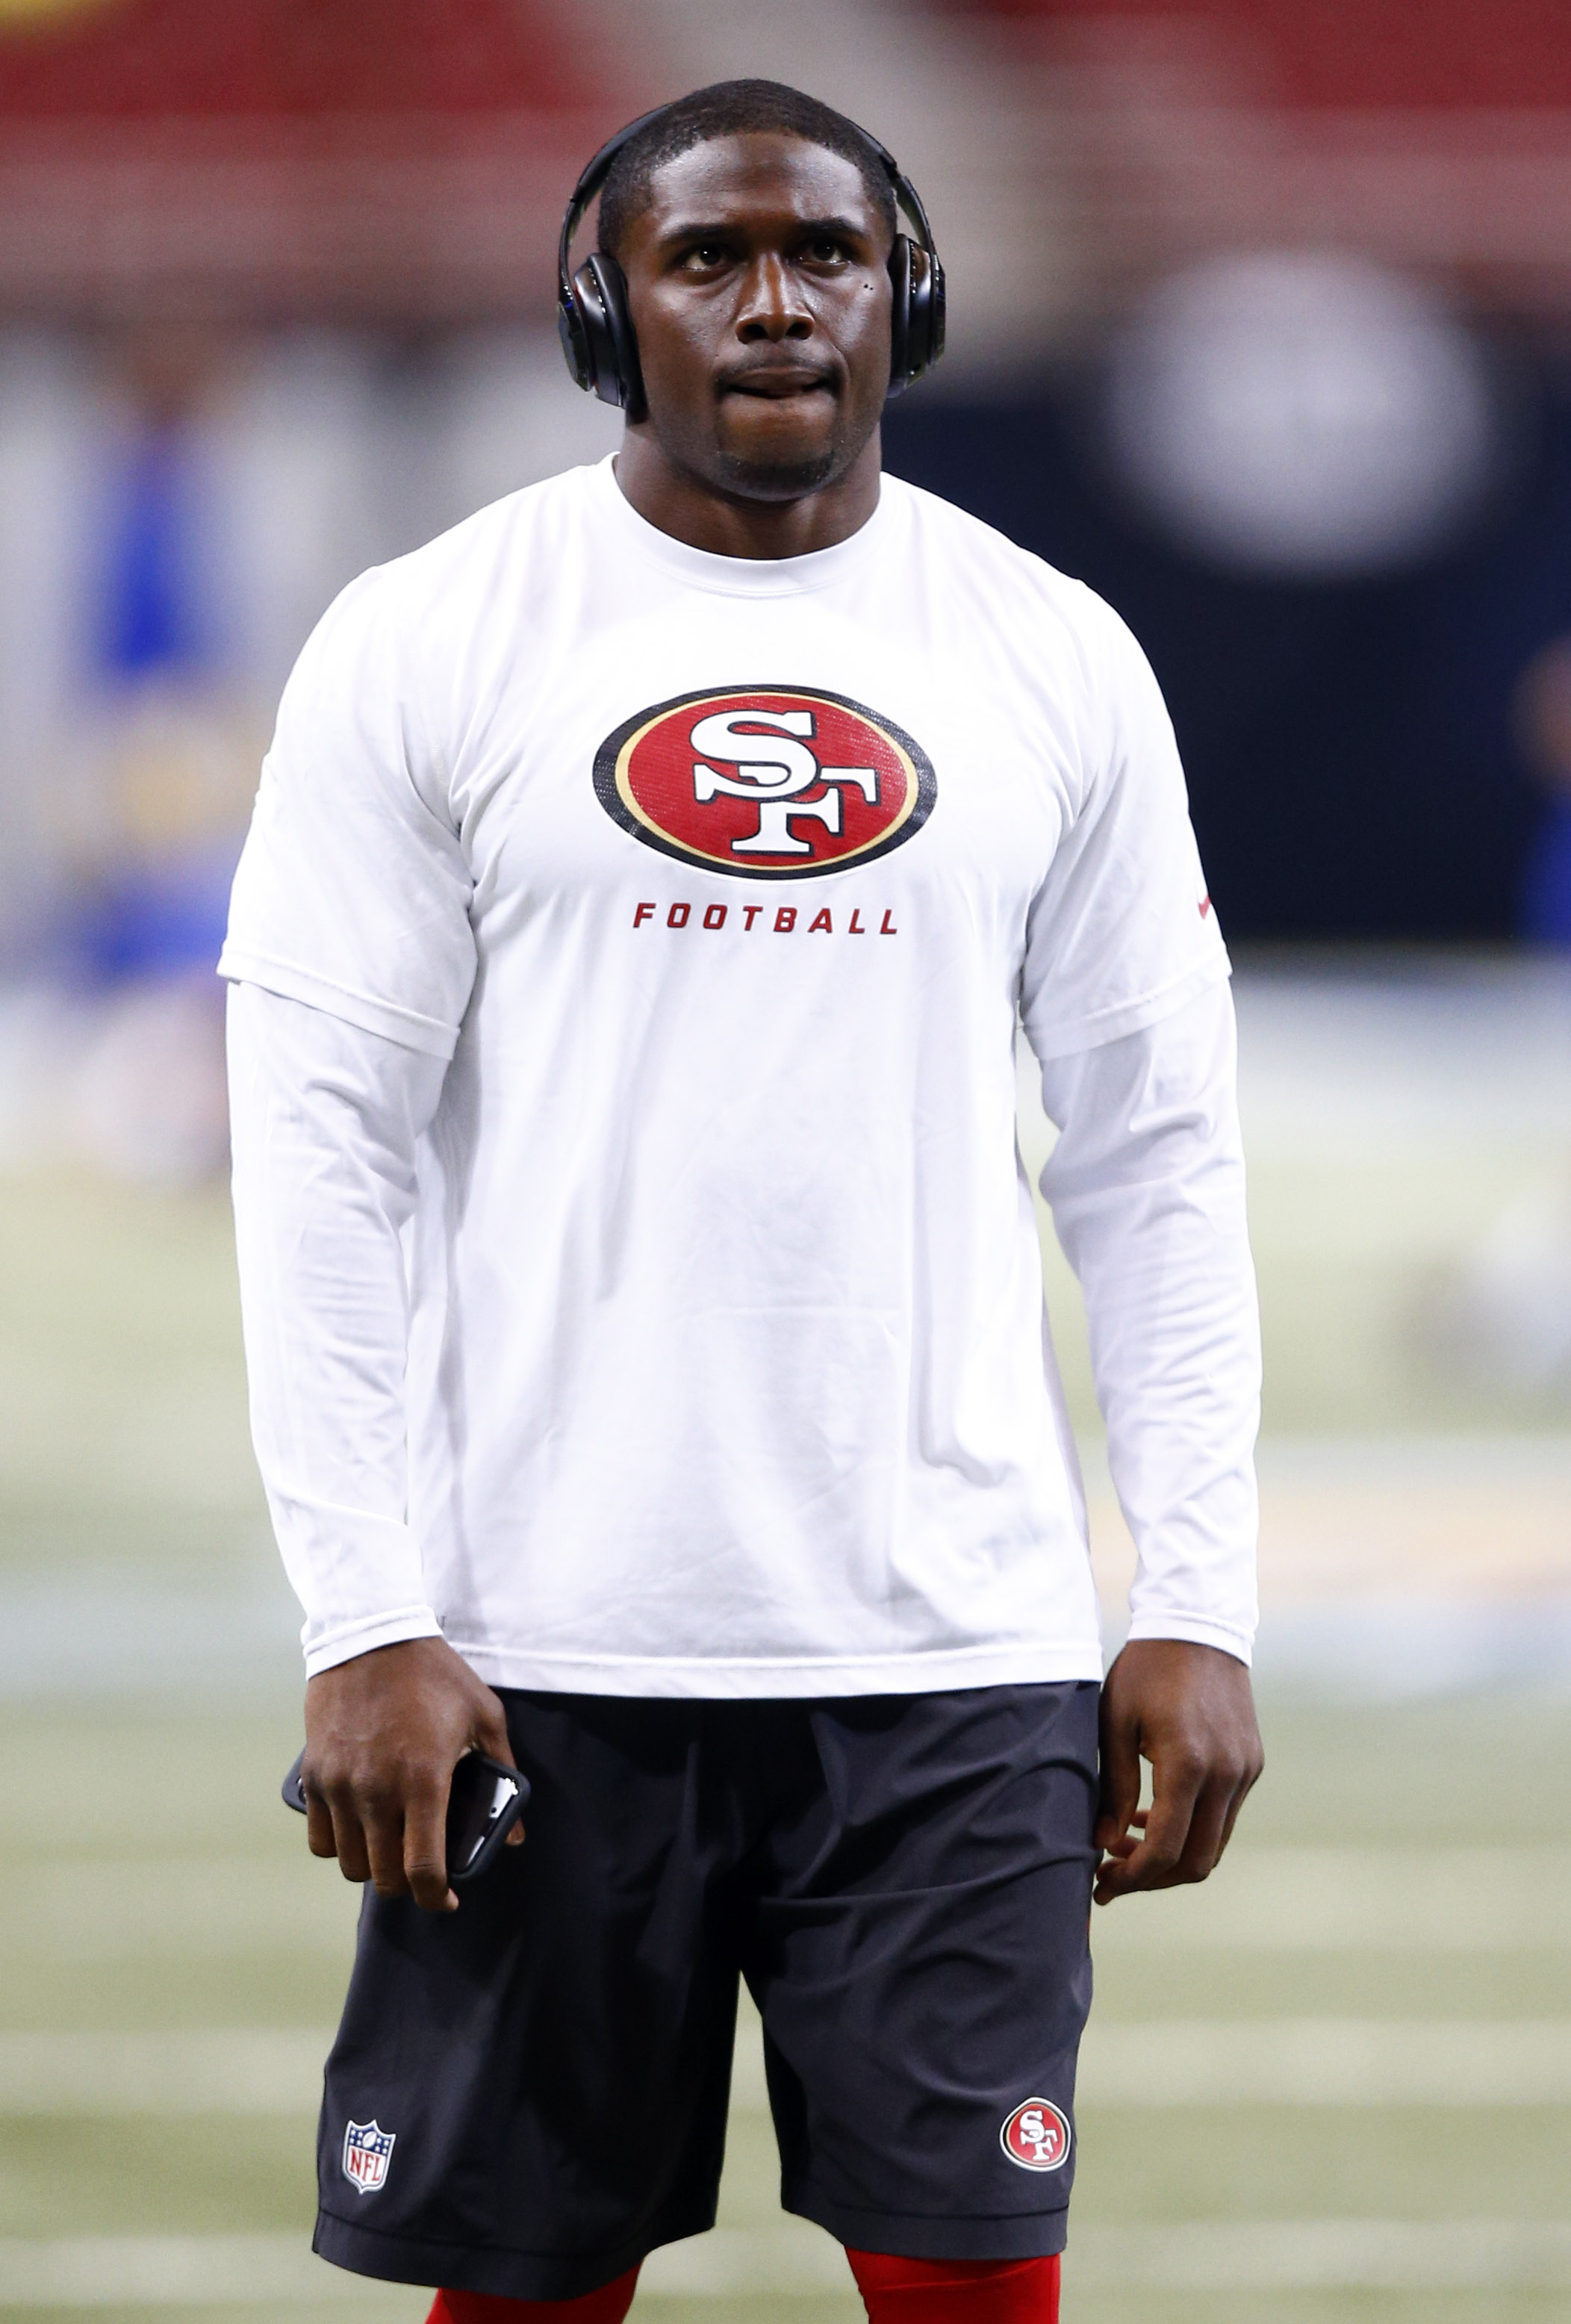 San Francisco 49ers running back Reggie Bush warms up before the start of an NFL football game between the St. Louis Rams and the San Francisco 49ers Sunday, Nov. 1, 2015, in St. Louis. (AP Photo/Billy Hurst)